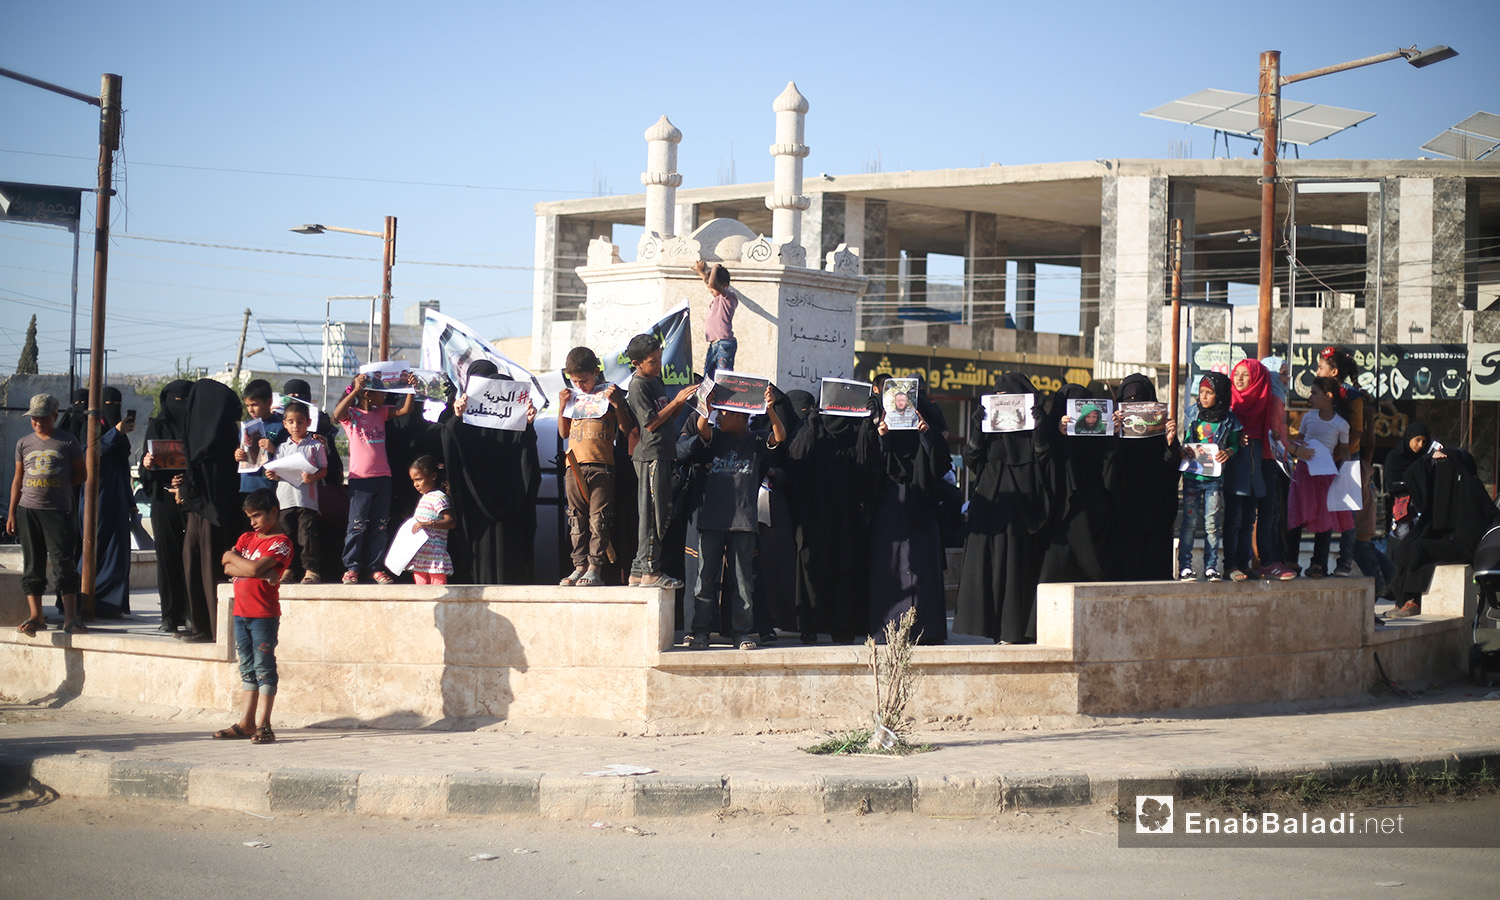 """A protest stand demanding the release of the British aid worker Tauqir Sharif, known as """"Abu Hussam the British"""" and the American journalist Darrell Lamont Phelps, nicknamed """"Bilal Abdul Kareem"""" in Atmeh of Idlib countryside – 20 August 2020 (Enab Baladi / Yousef Ghuraibi)"""